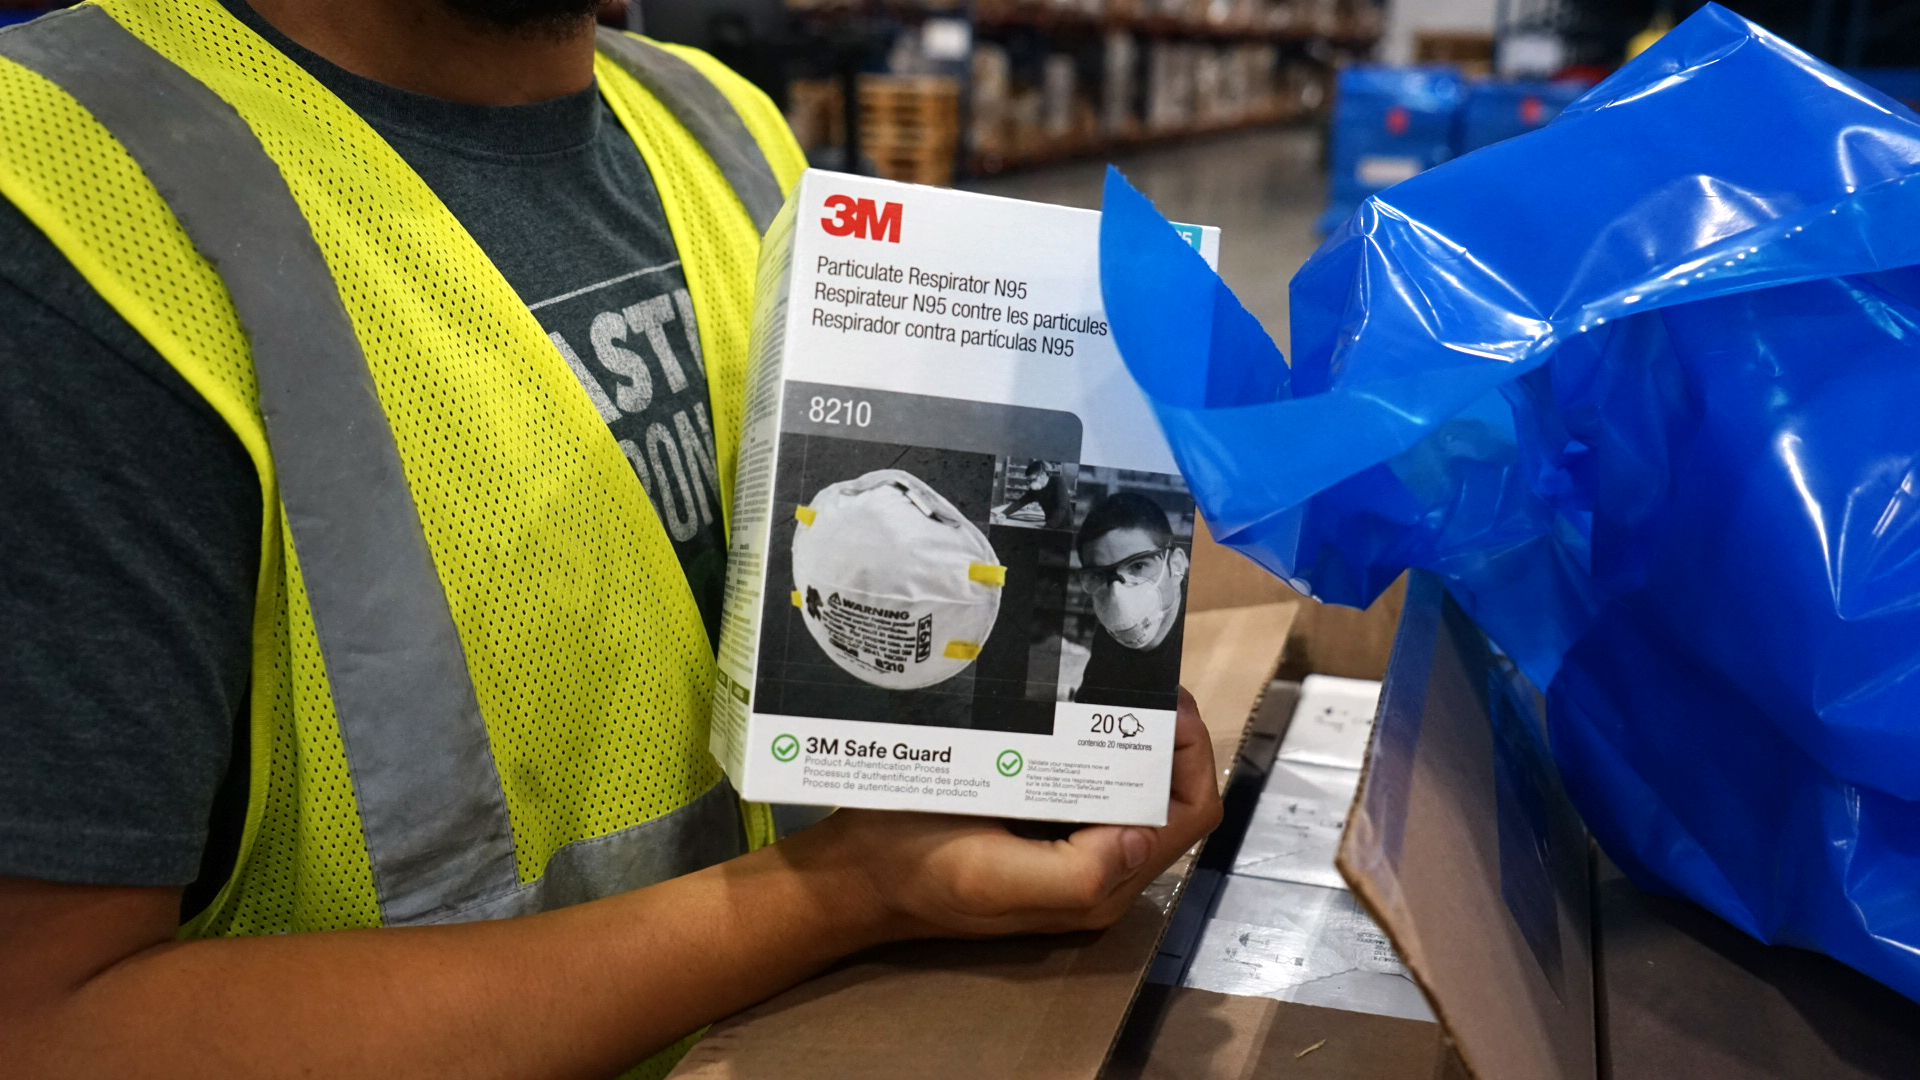 Protective equipment, including N-95 masks, were shipped out to clinics in the Democratic Republic of Congo, where an outbreak of Ebola has killed more than 40 people. Protective gear is essential to stopping the spread of the highly contagious disease. (Bryn Blanks/Direct Relief)